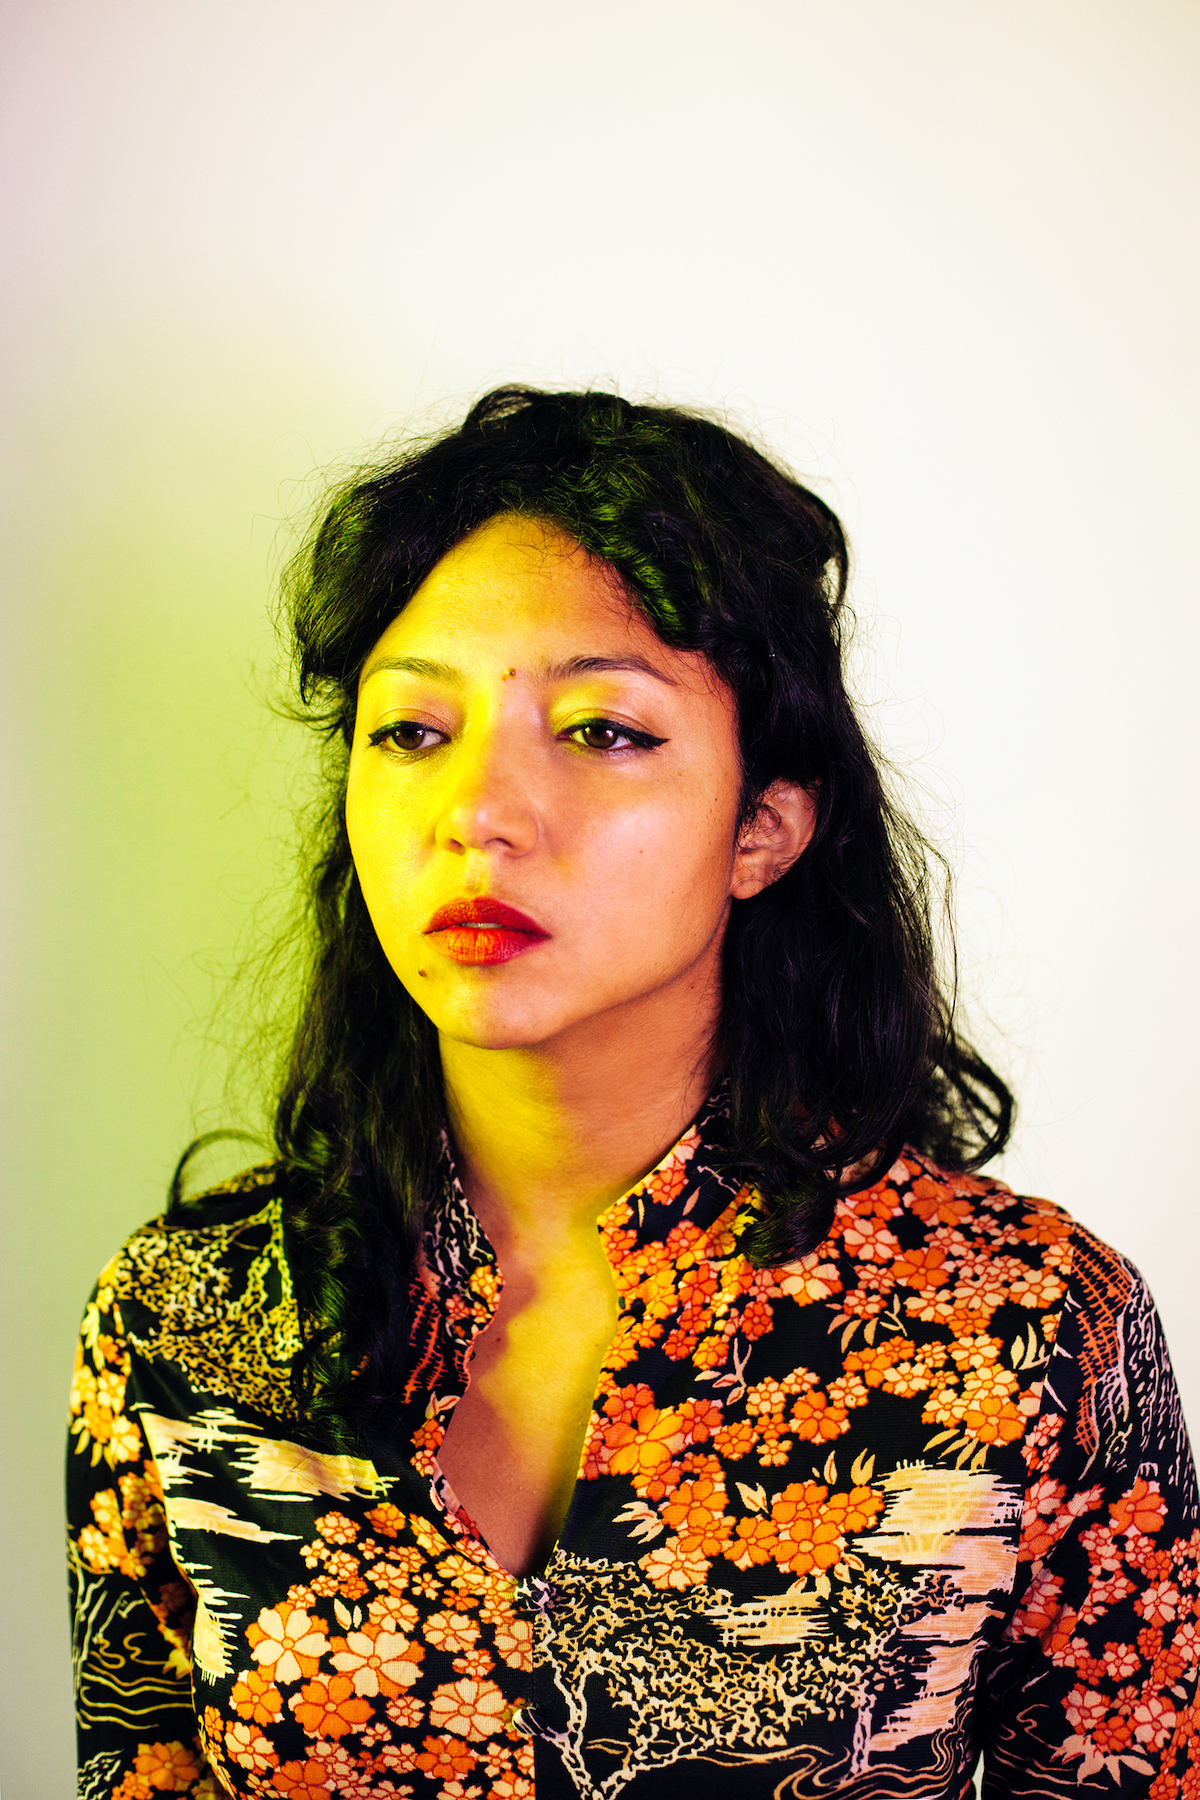 Shana Cleveland (Credit Eleanor Petry)